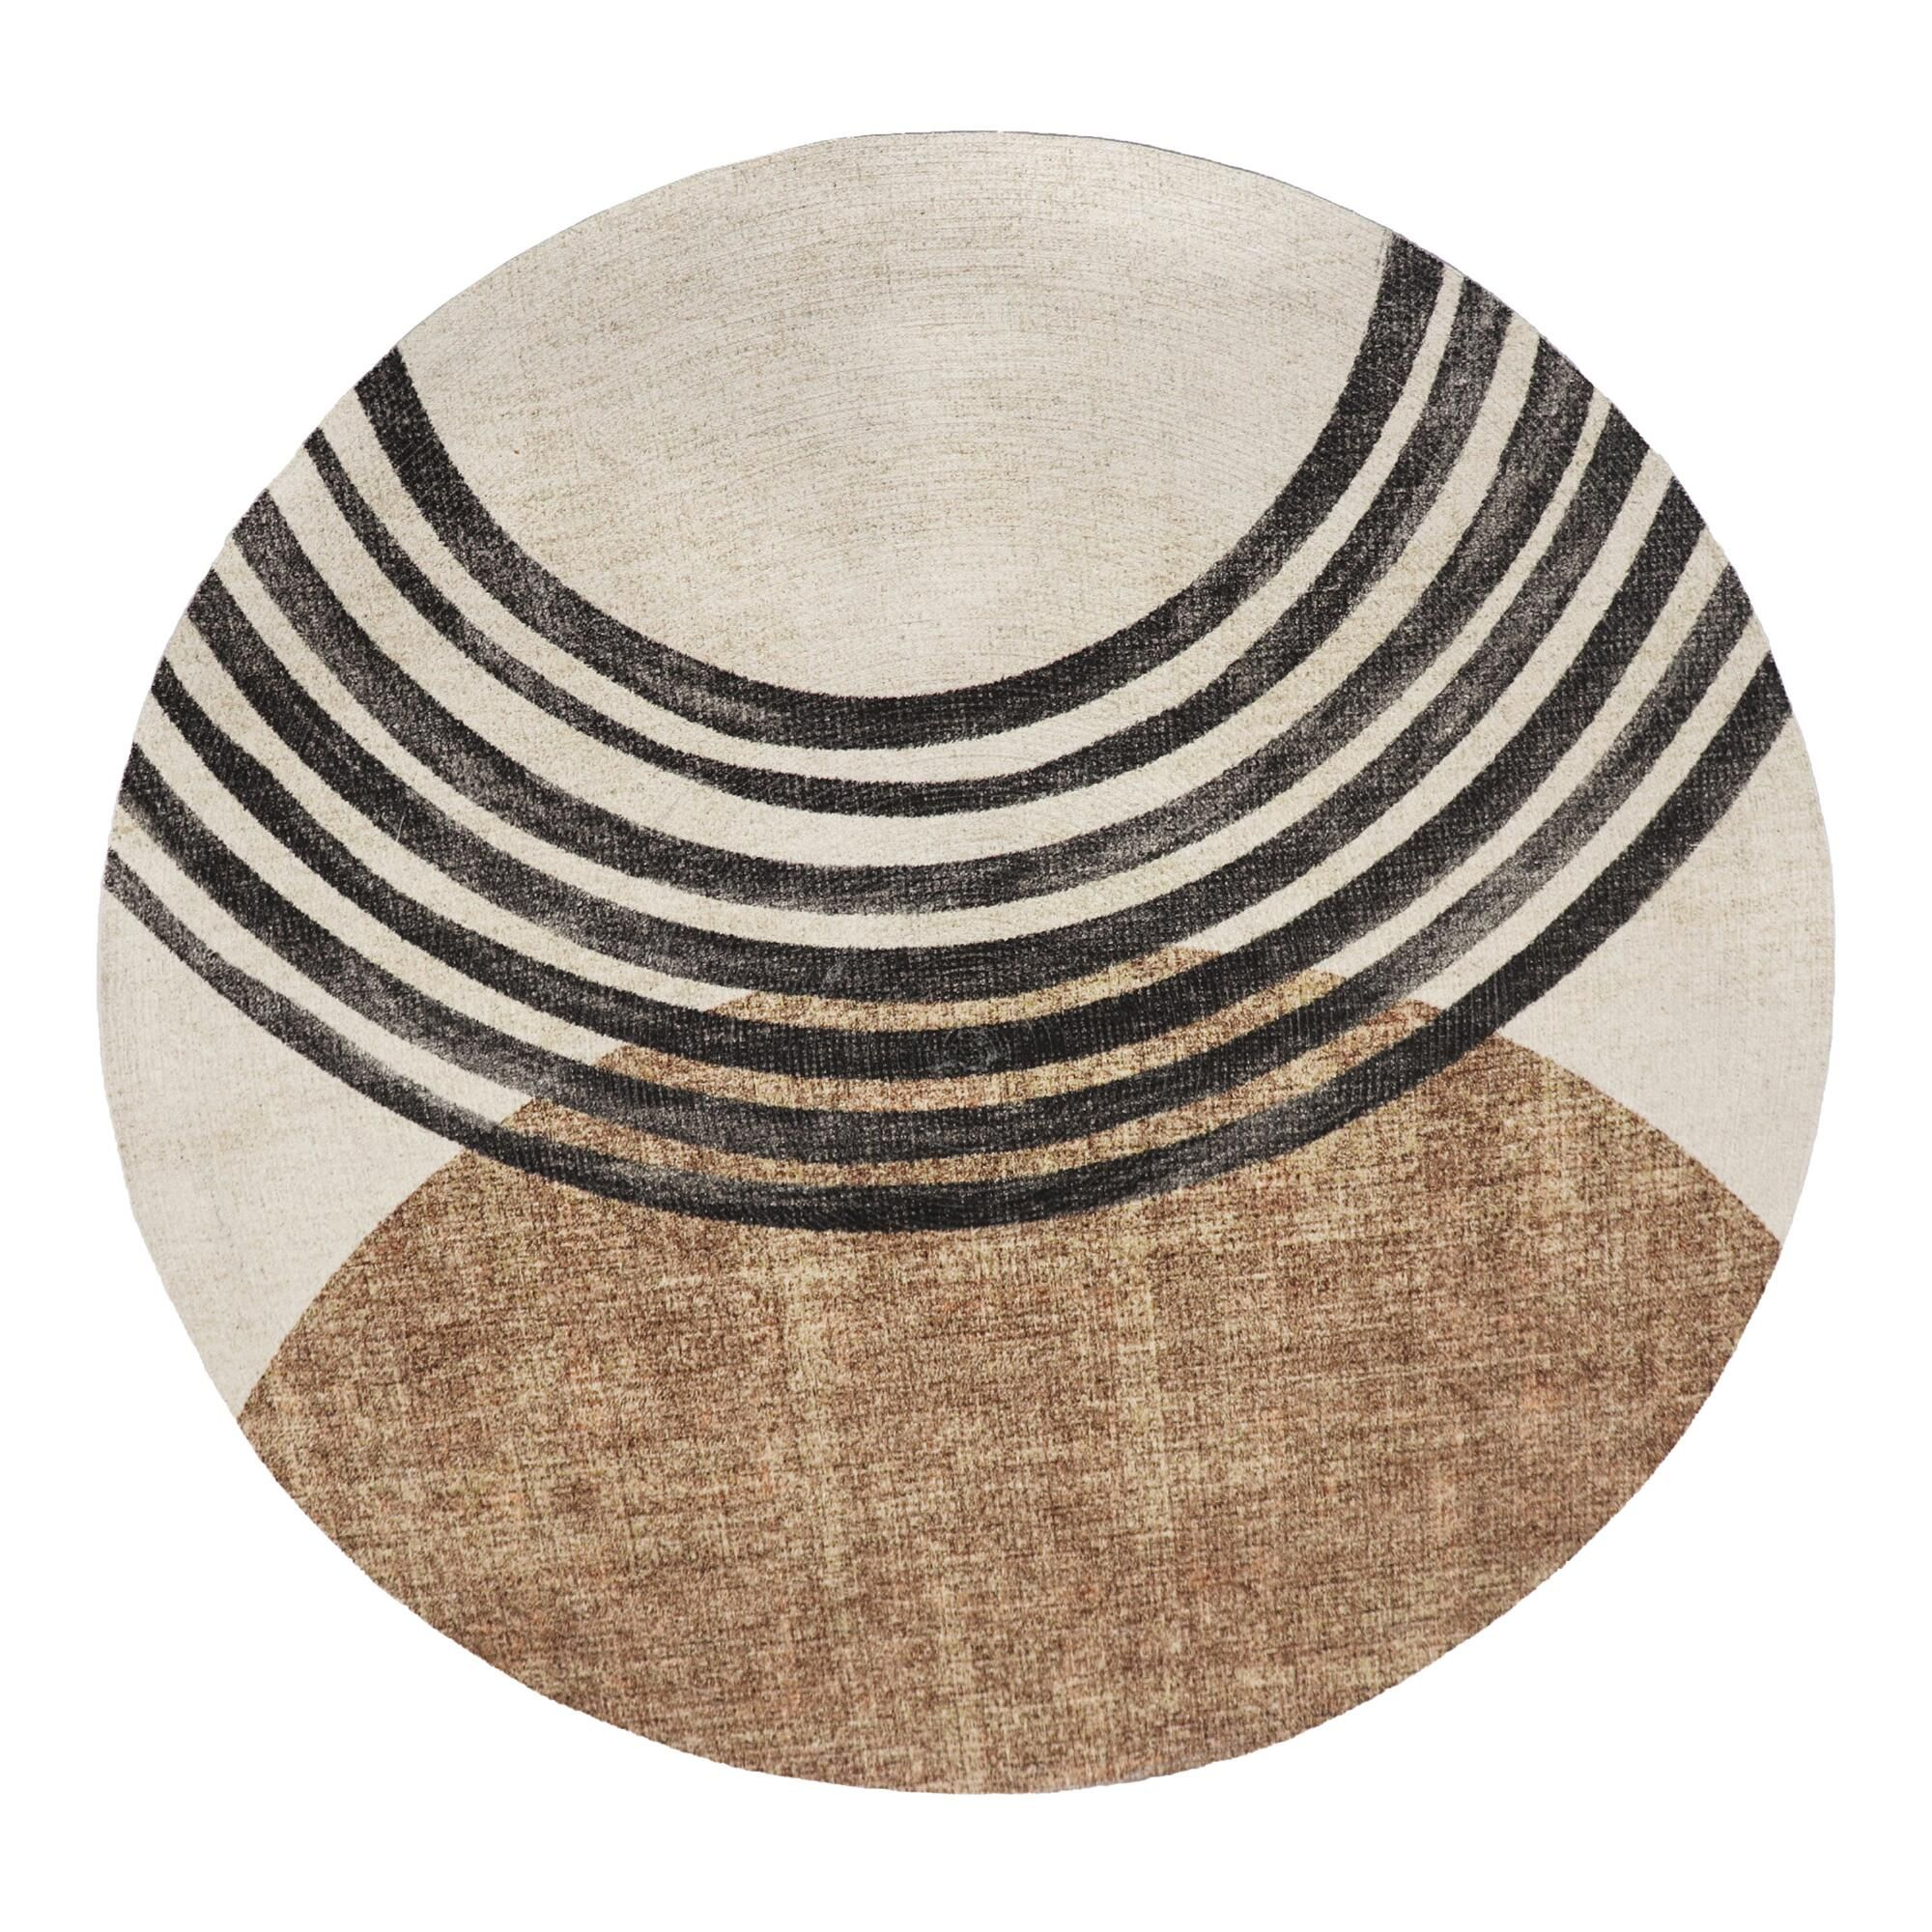 Amazon Com 1052 Brown 6 5x6 5 Area Rugs Modern Contemporary Abstract Black Ivory Beige Carpet Unique Area Rugs Contemporary Round Rugs Round Area Rugs